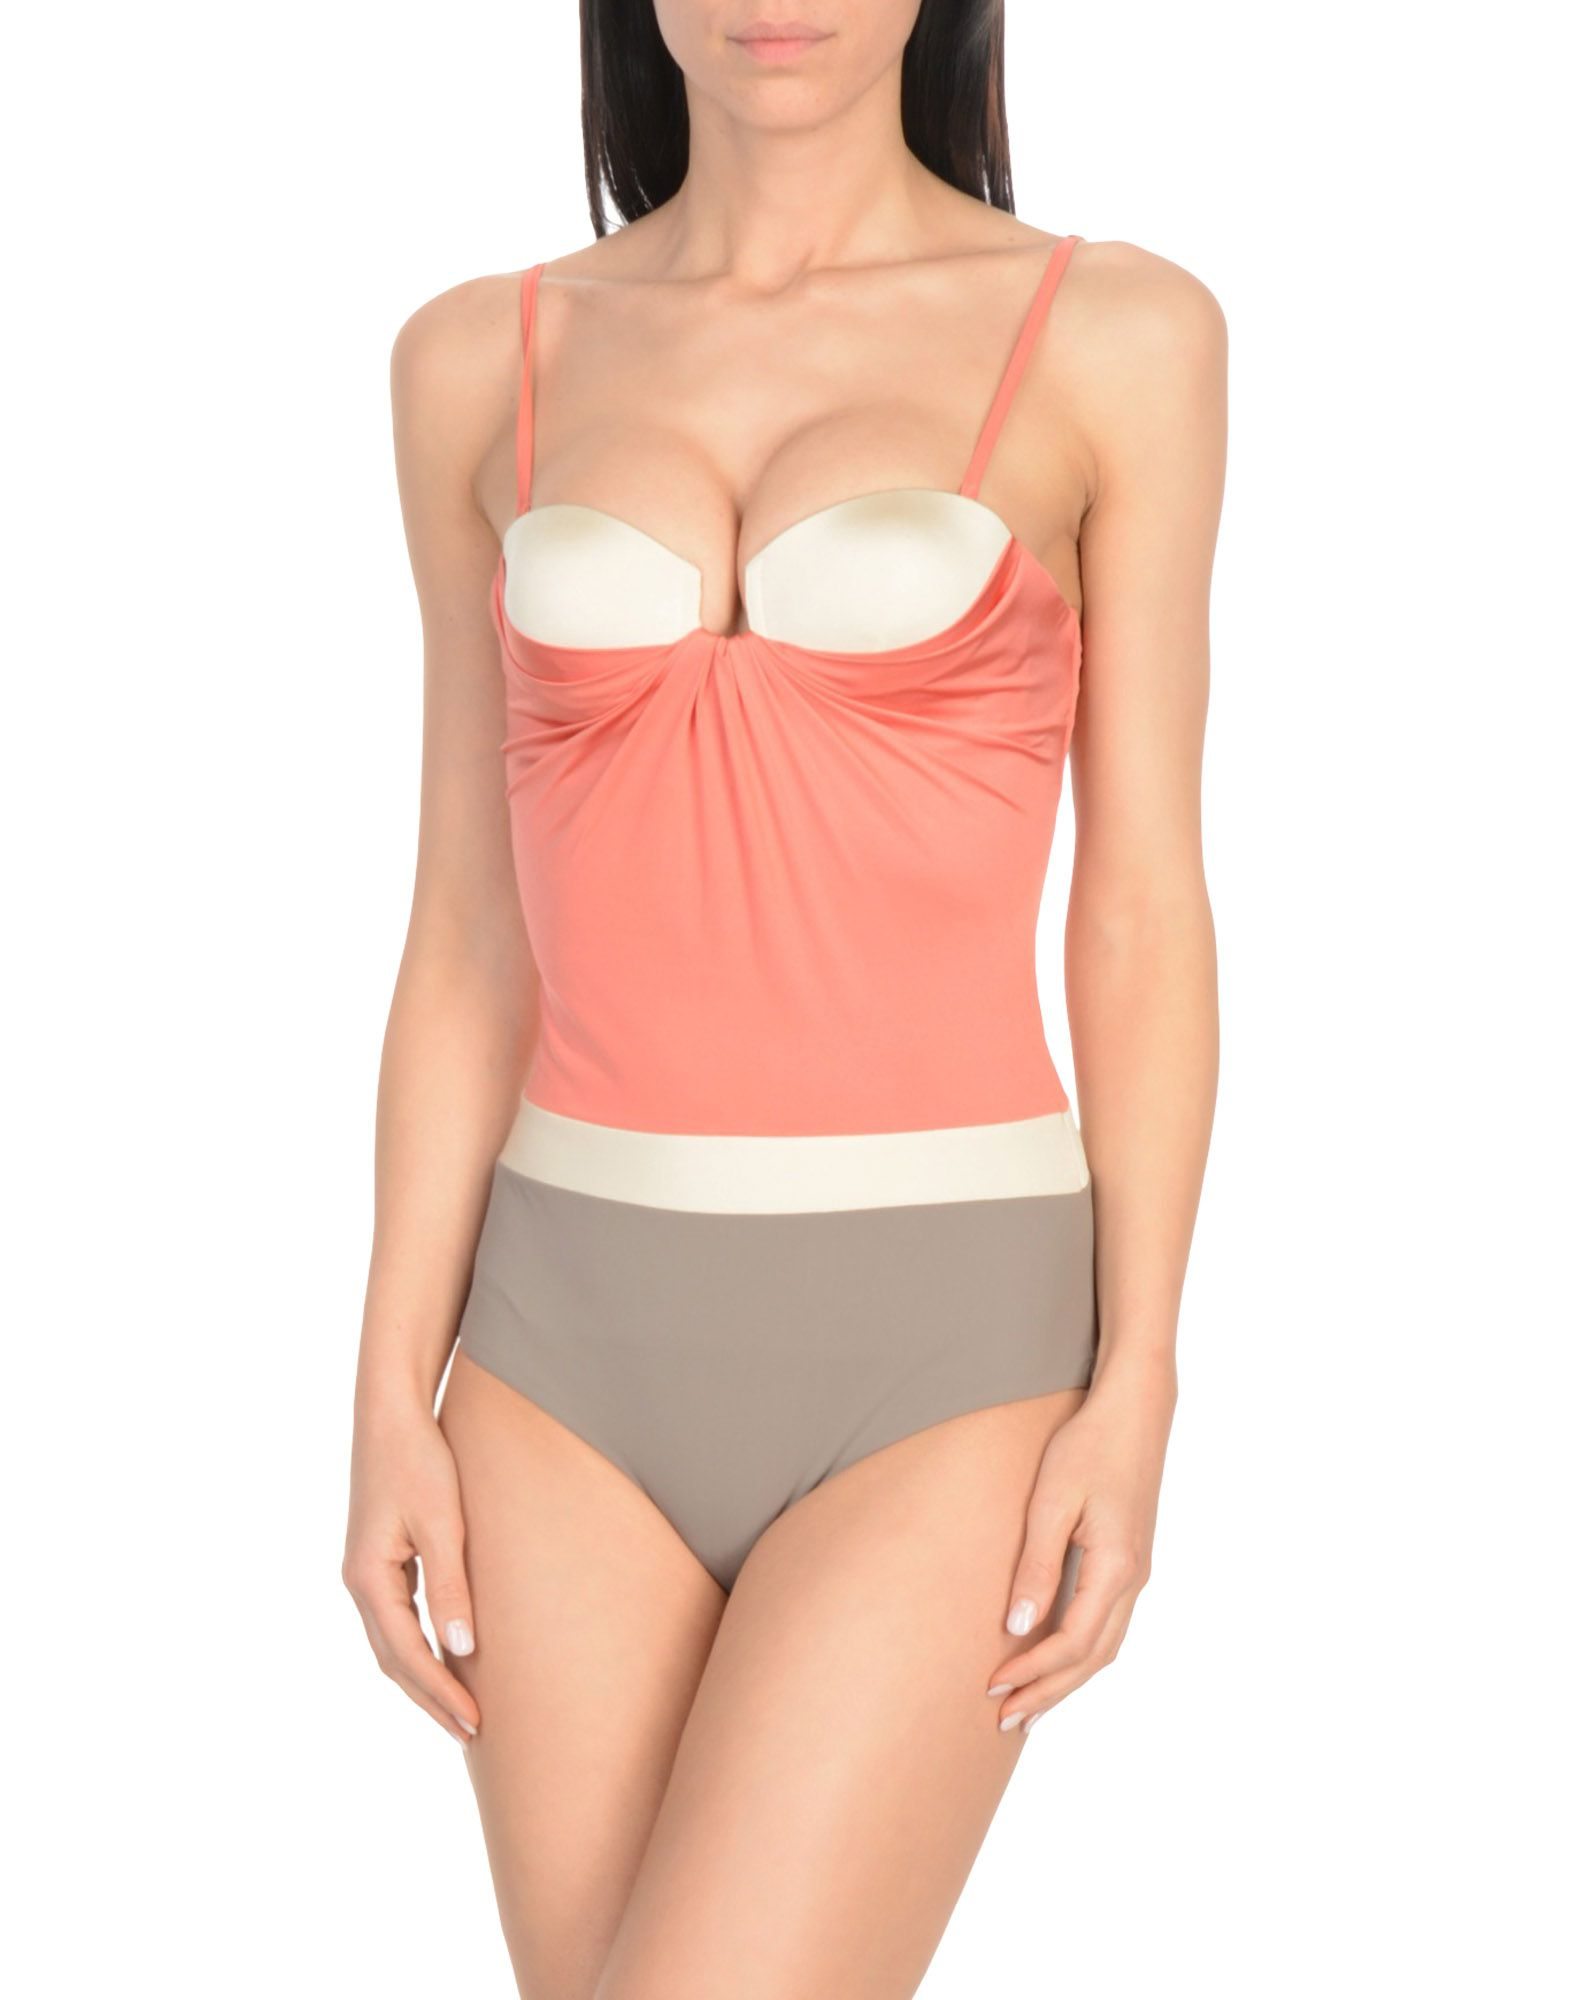 MOEVA One-Piece Swimsuits in Pastel Pink